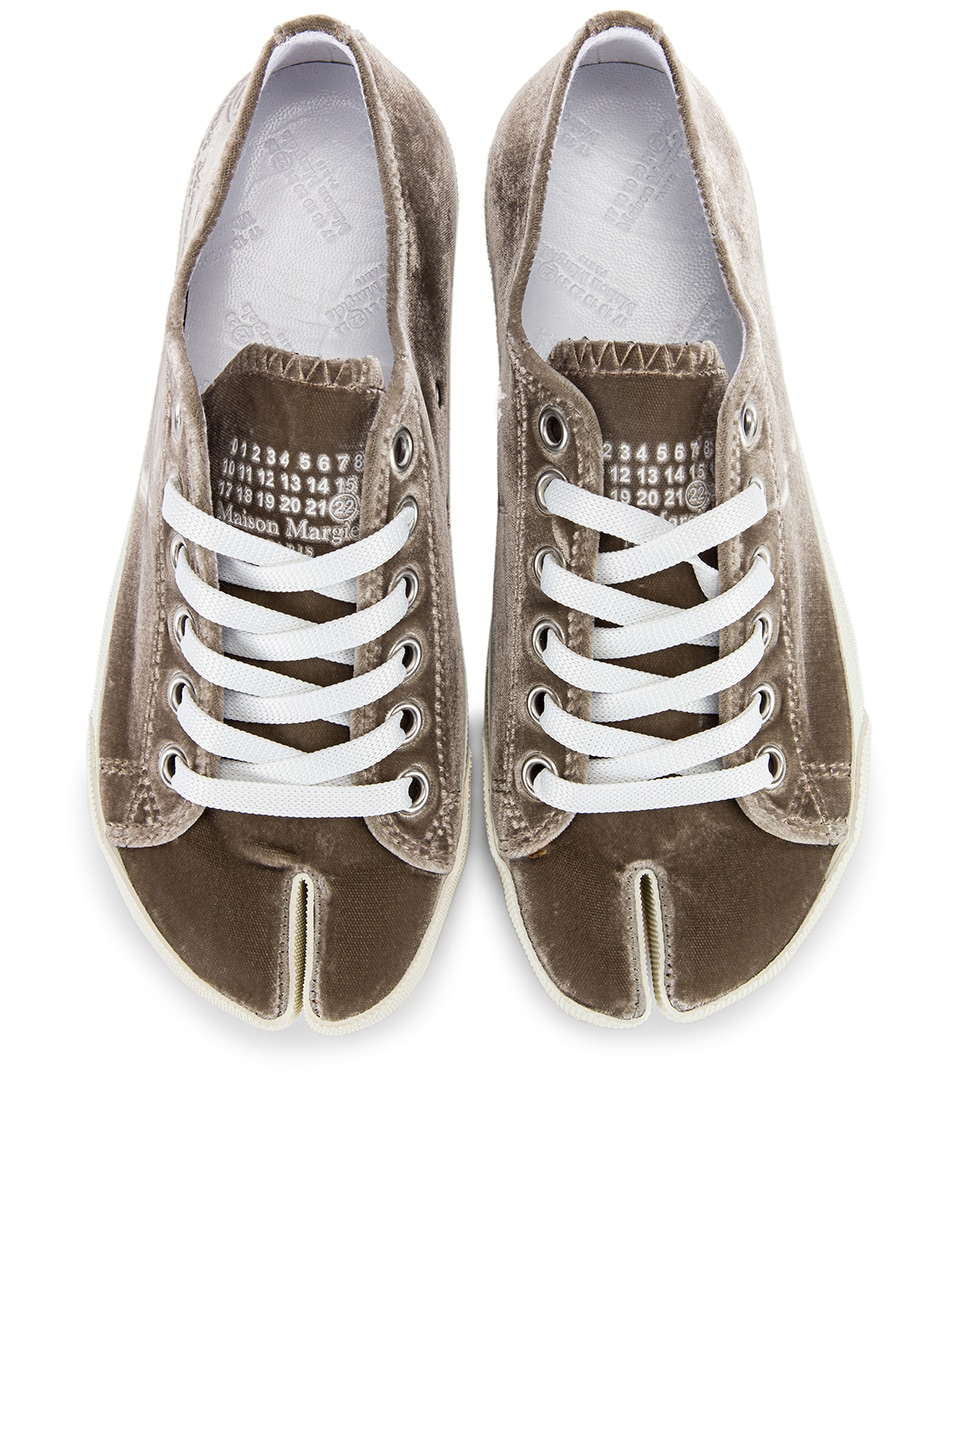 Image 1 of Maison Margiela Toe Lace Up Sneakers in Champagne Beige